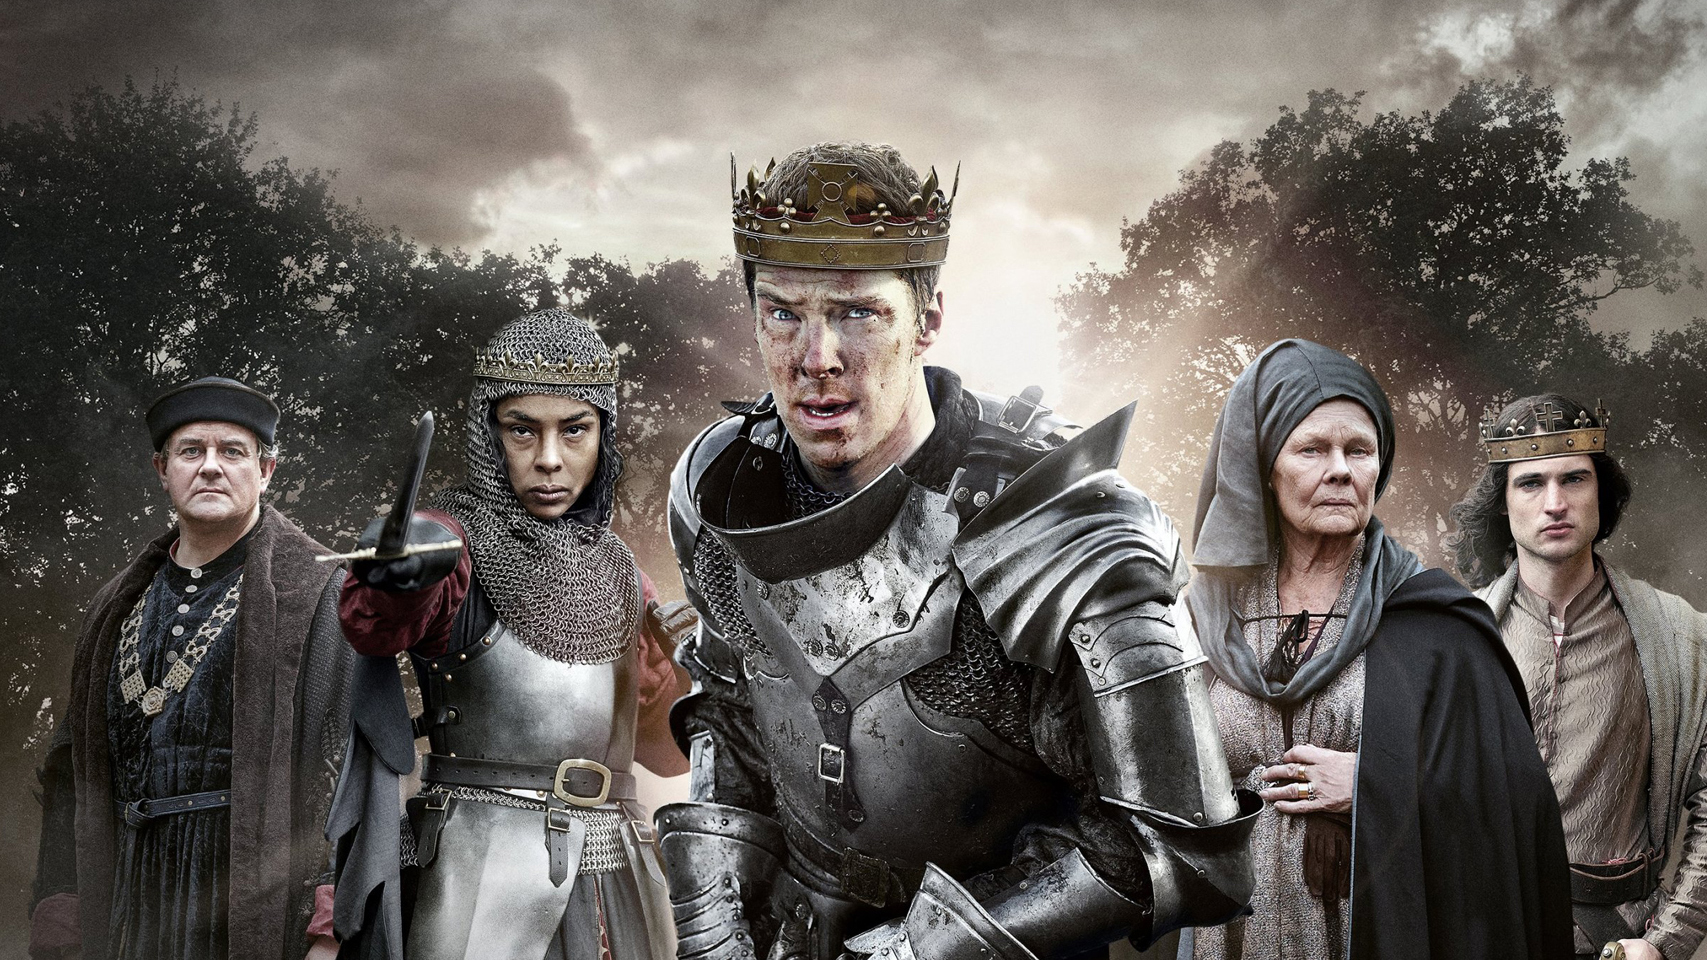 The Hollow Crown is…Early 21st Century Shakespeare in a Medieval Setting